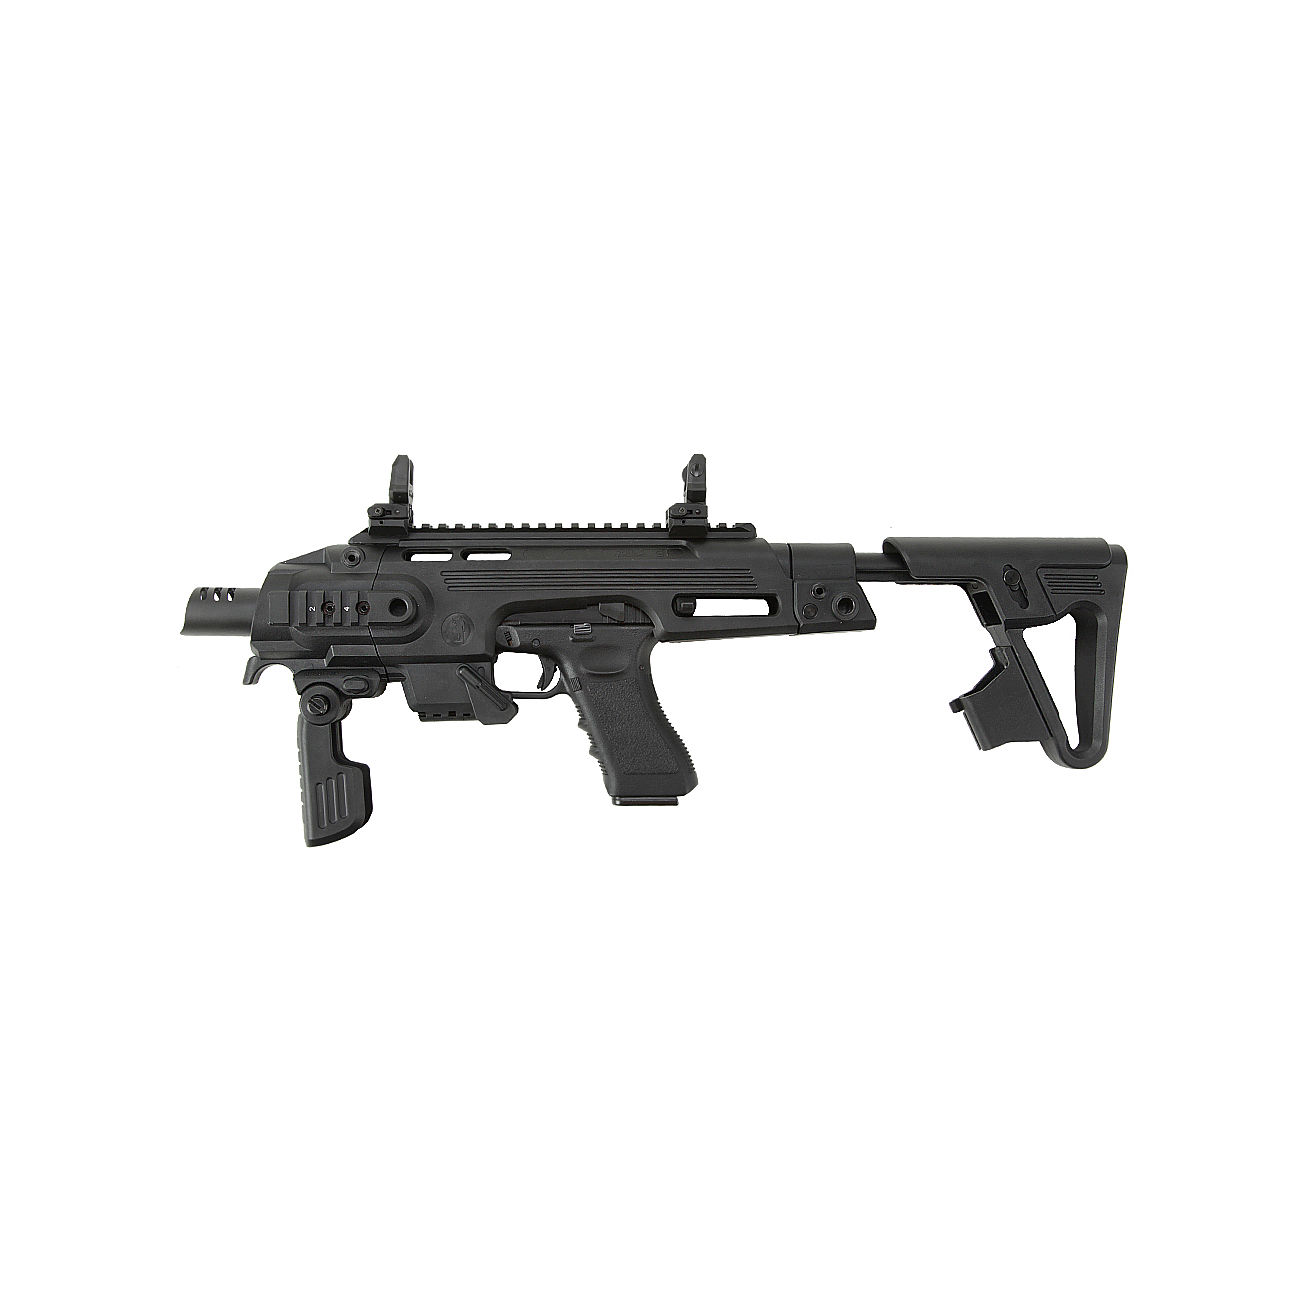 CAA Airsoft Division RONI Carbine Conversion Kit f. TM / KSC / WE G17 / G18C / G18 / G23F schwarz 1